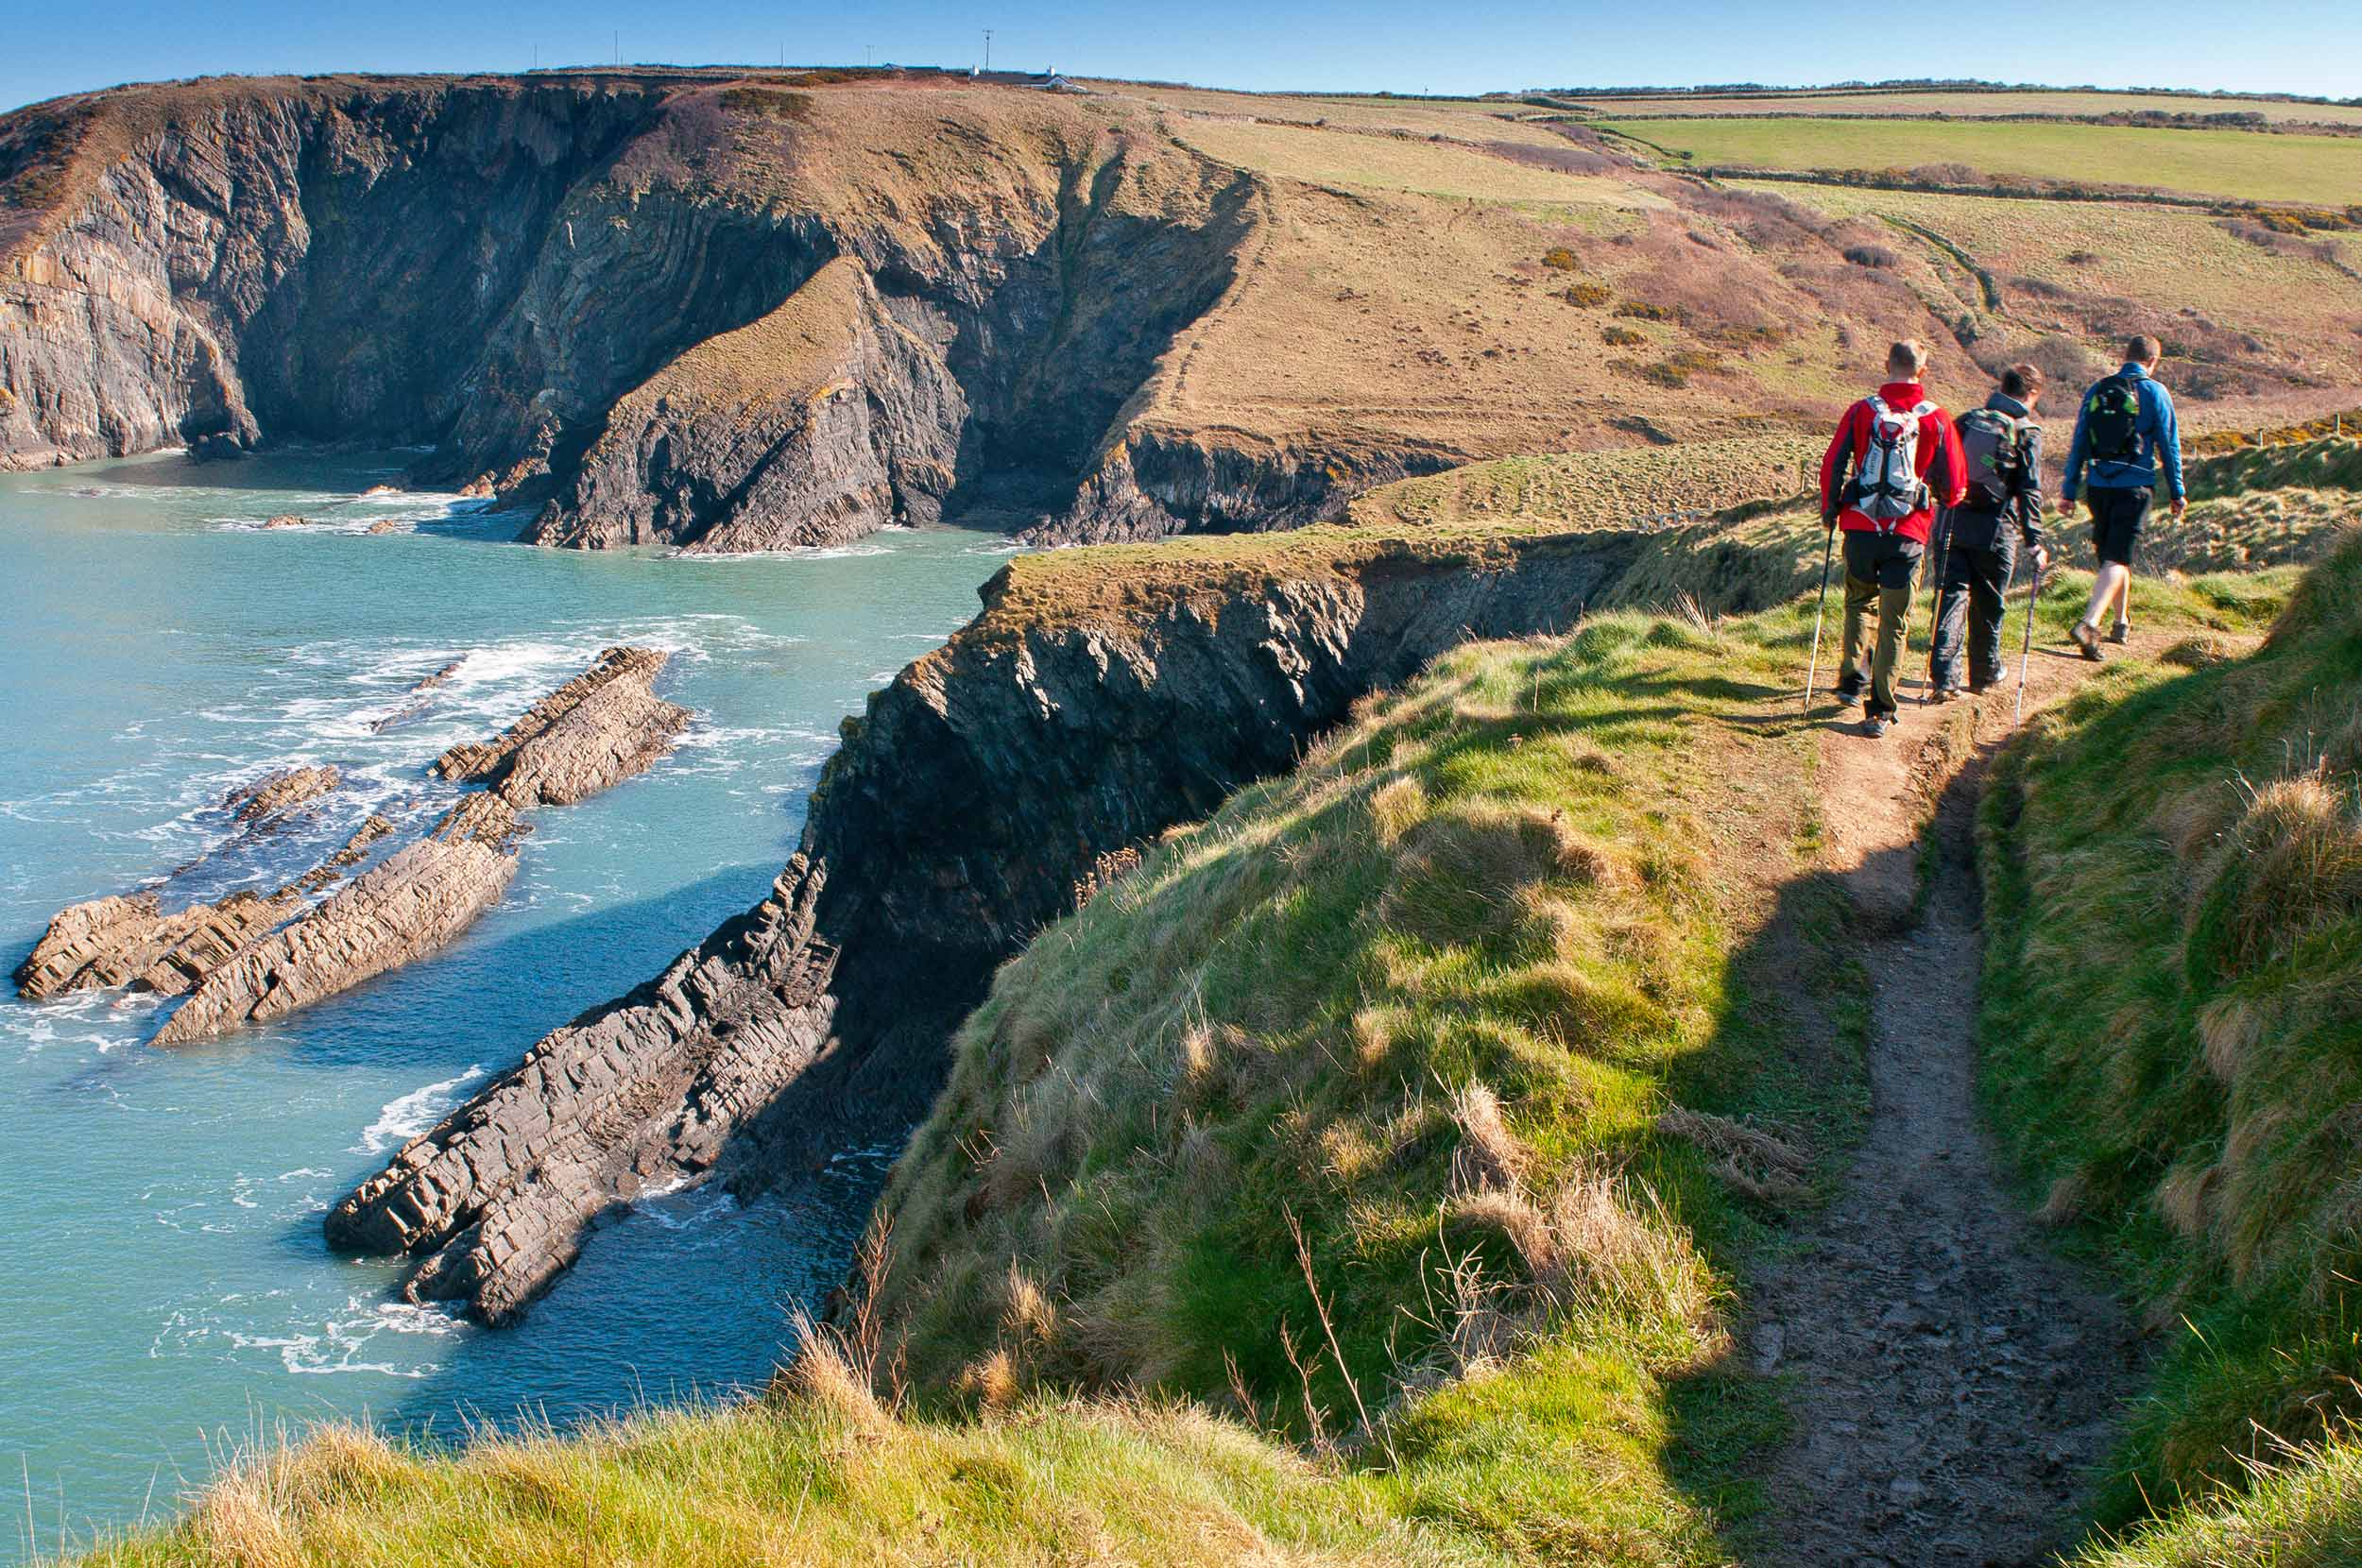 Walkers on the Pembrokeshire Coast Path, Wales  (Crown copyright 2018 / Visit Wales)